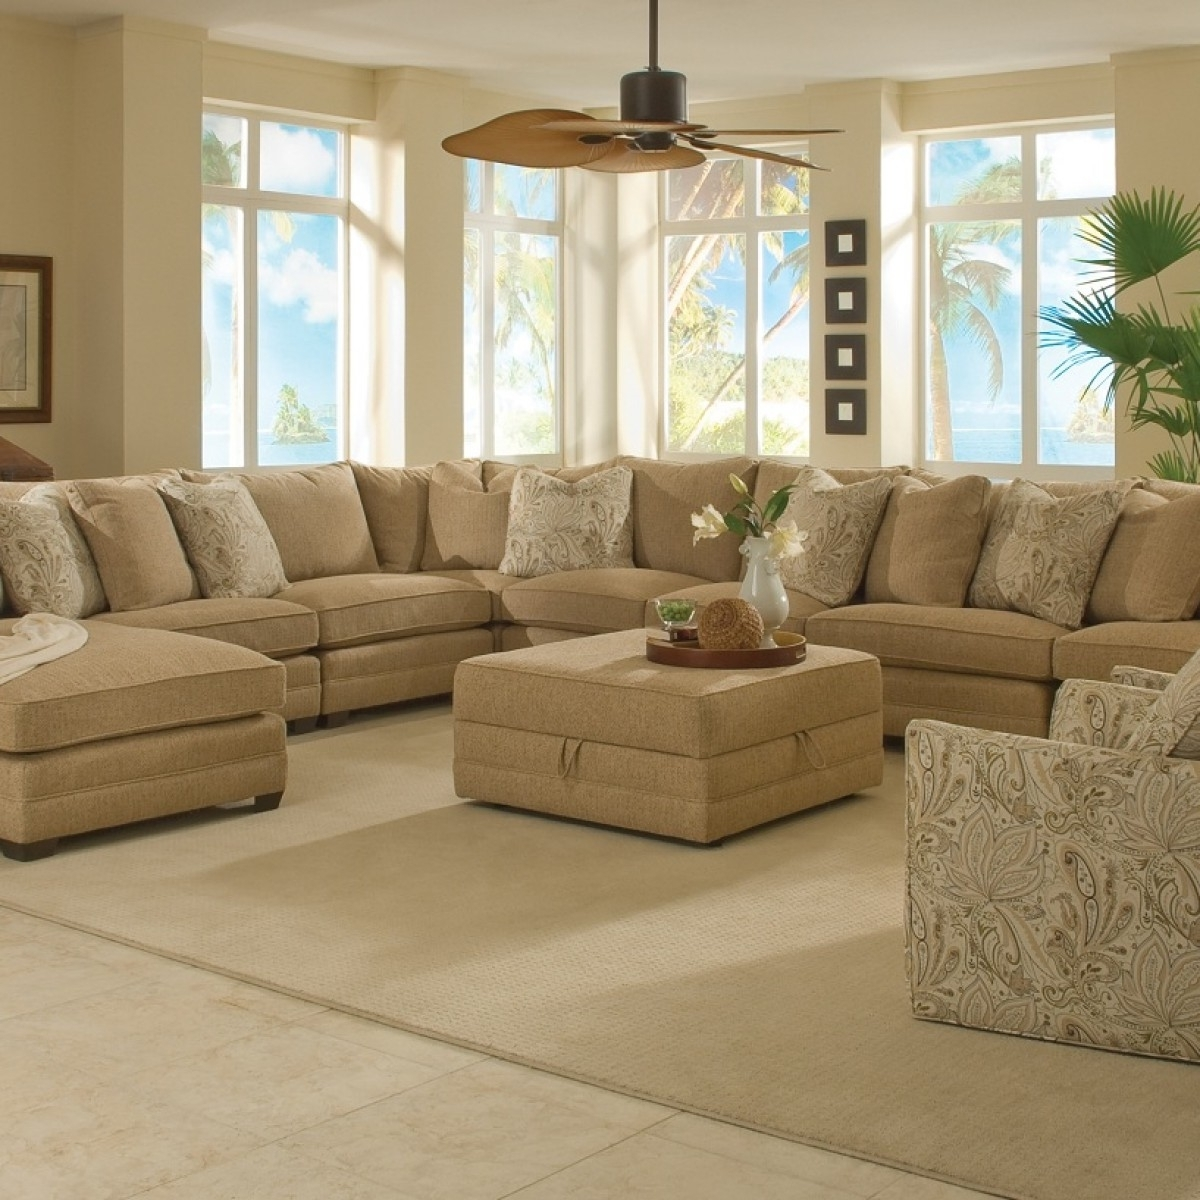 Huge Sectional Sofas – Tourdecarroll In Well Liked Joss And Main Sectional Sofas (View 5 of 15)